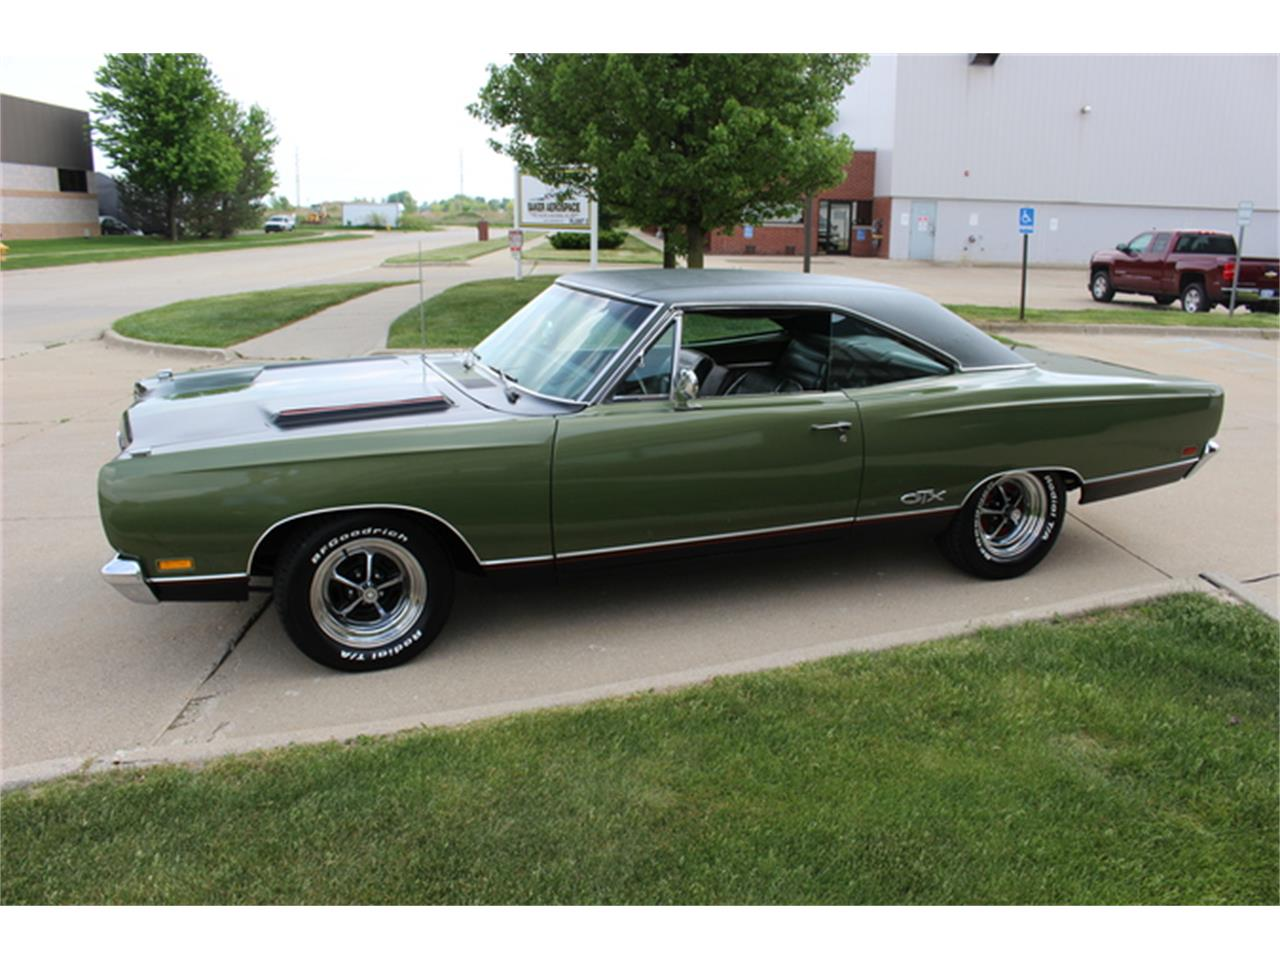 1970 PLYMOUTH GTX 2 DOOR HARDTOP 161878 furthermore 1970 Plymouth Roadrunner Superbird Project 440 Big Block 4 Speed Nascar Hemi 217800 additionally Mopar 440 Engine Specs also 1970 Plymouth Roadrunner Green Hor besides 1965 1966 1967 Plymouth Dodge Dodge Truck Pickup   Van Chrysler Mop. on 1970 plymouth gtx 440